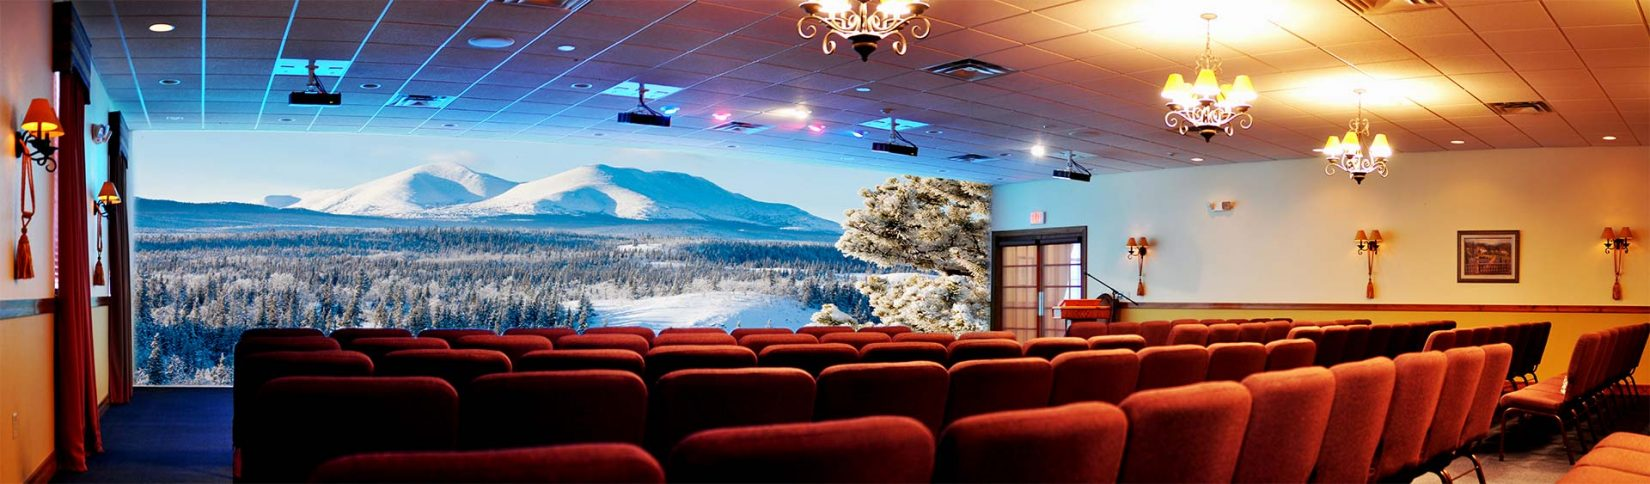 A Multi Projection Blended System Created By Crunchy Tech in Orlando, Fl